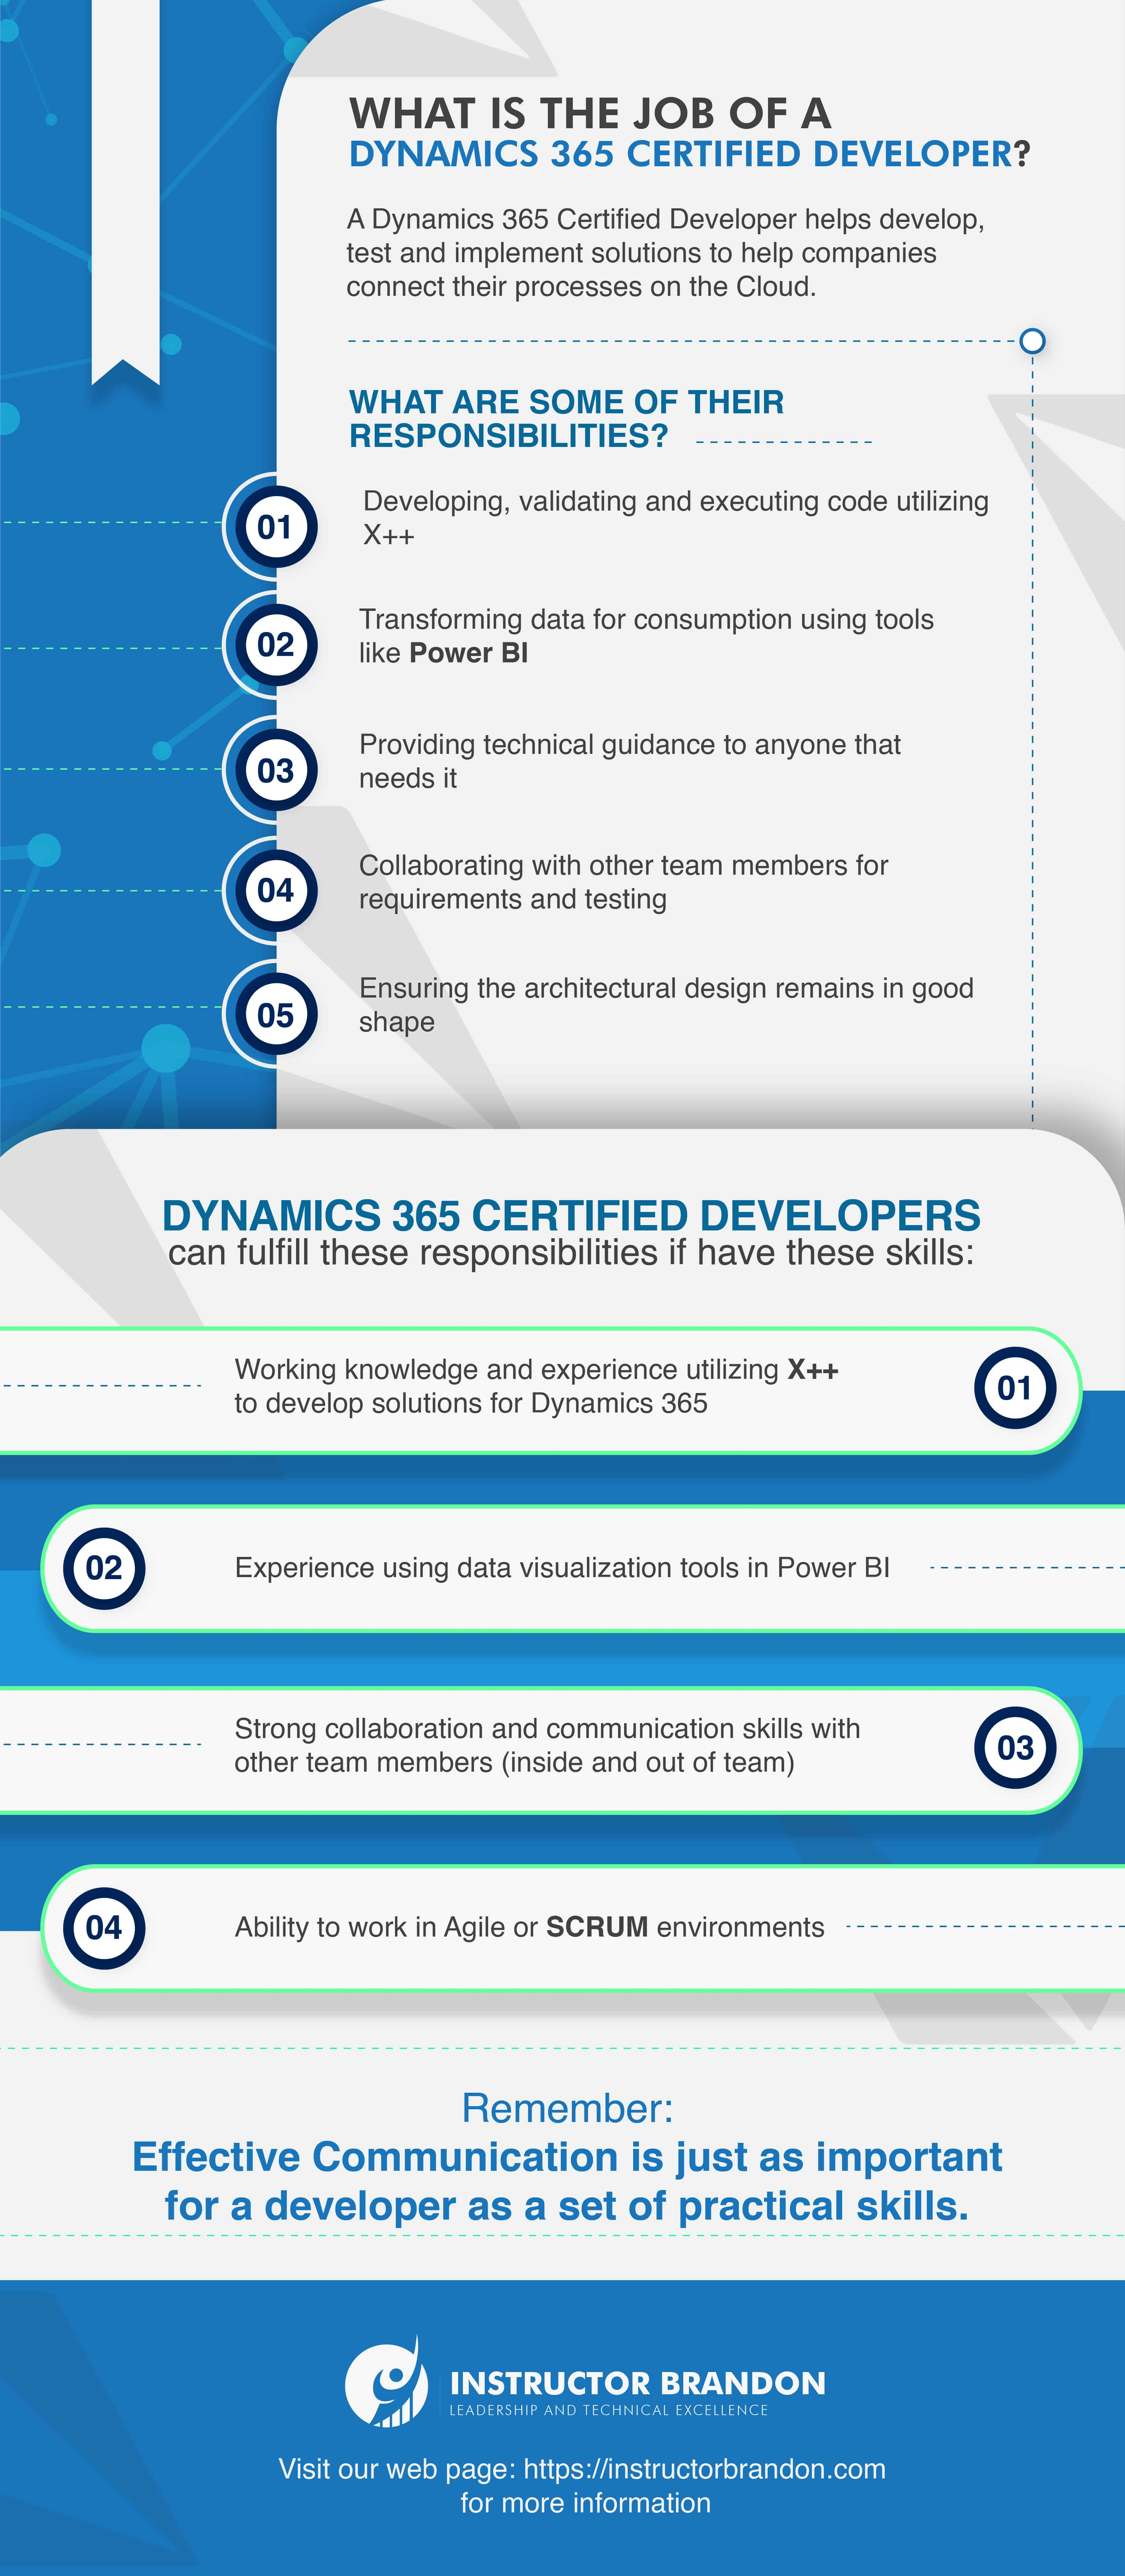 Infographic Describing the Role, Responsibilities, and Skills of a Microsoft Certified Dynamics 365 Developer